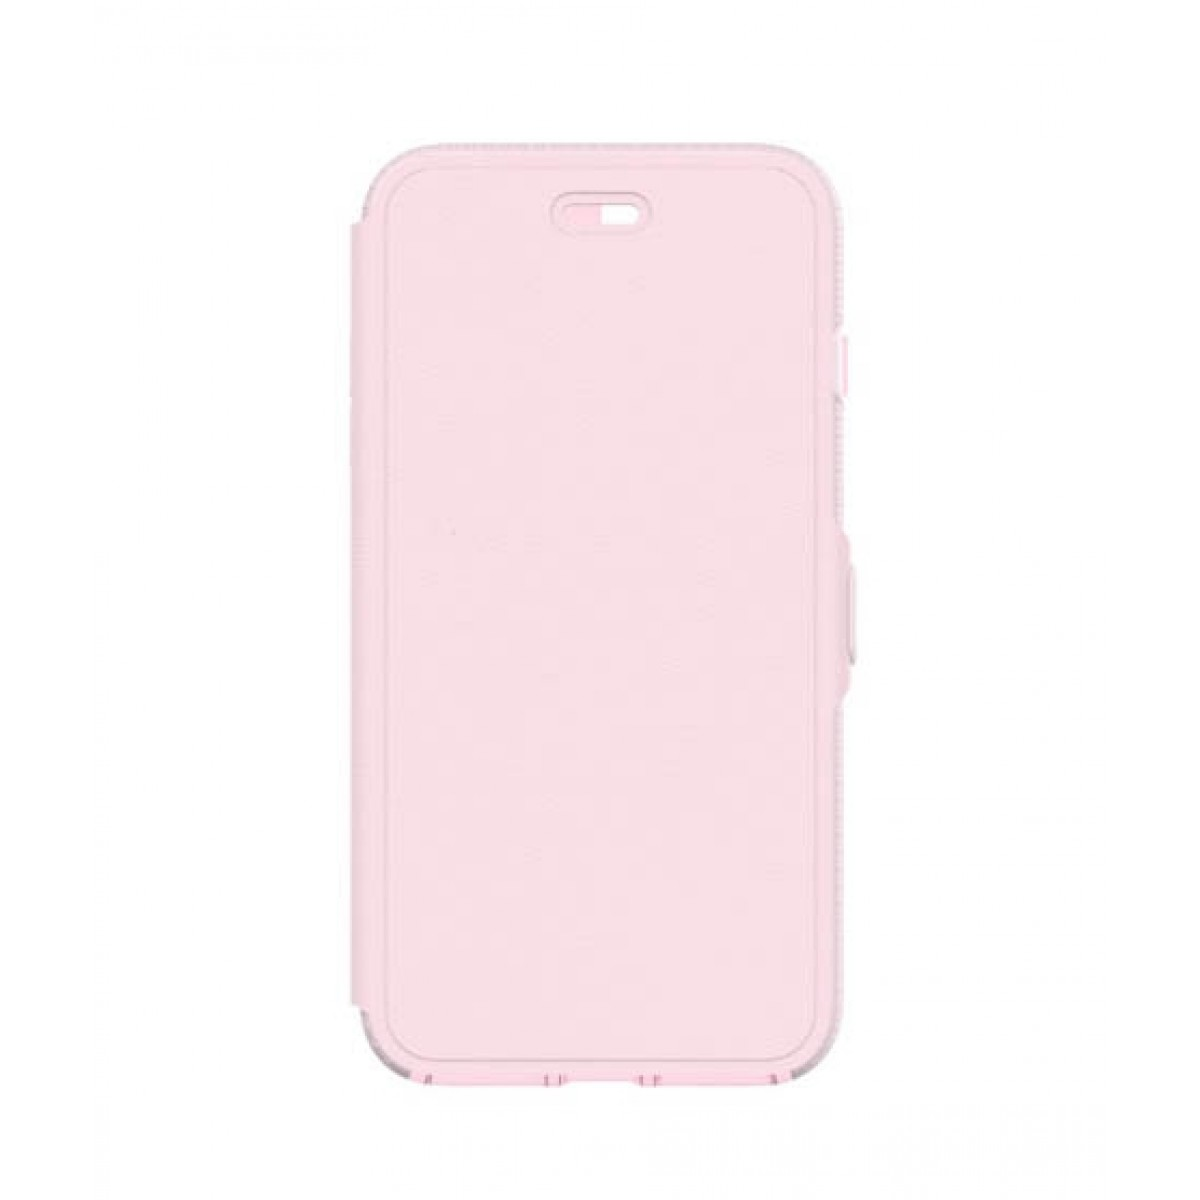 factory price 50505 81b78 Tech21 Evo Wallet Pink Case for iPhone 8 Plus